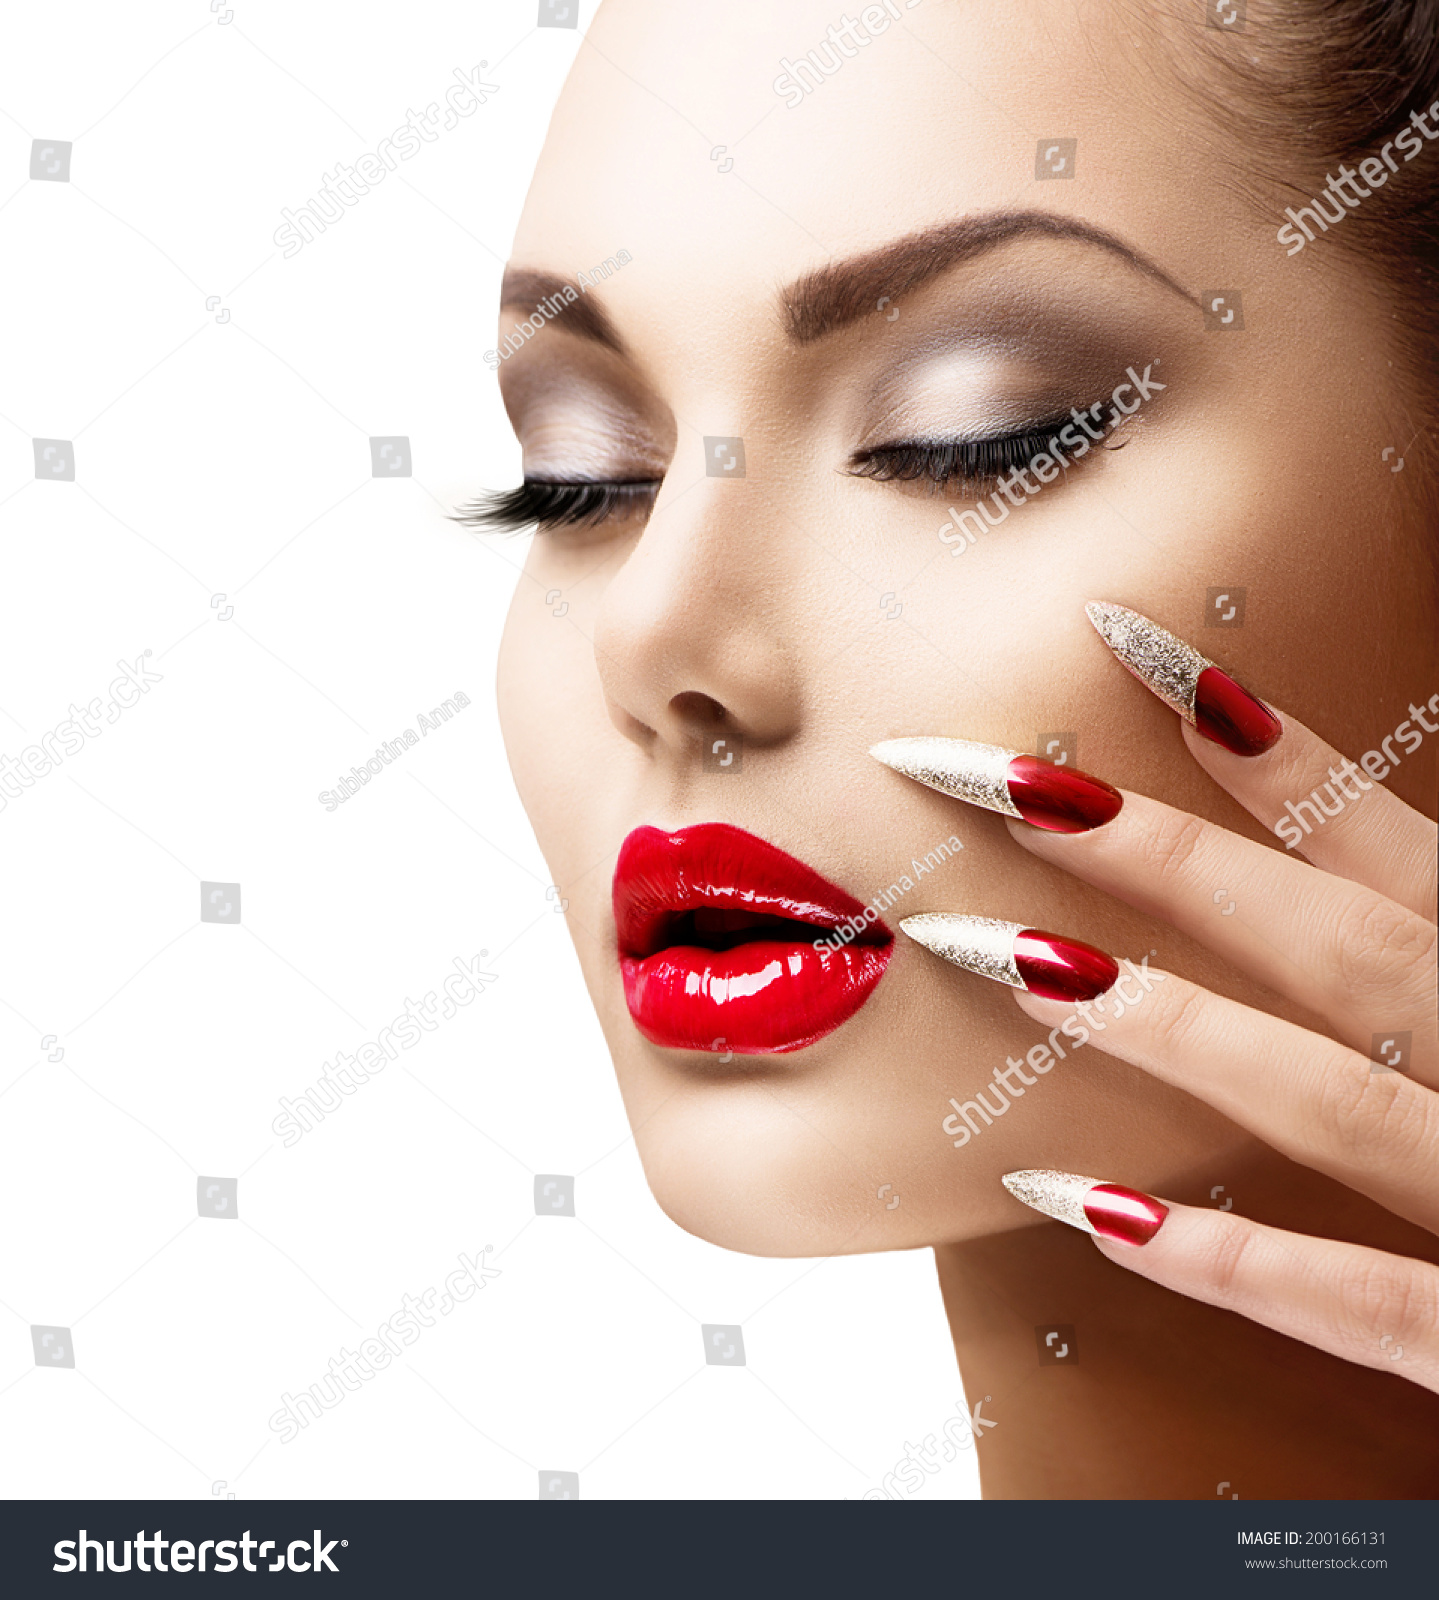 Fashion Beauty Model Girl Manicure Makeup Stock Photo